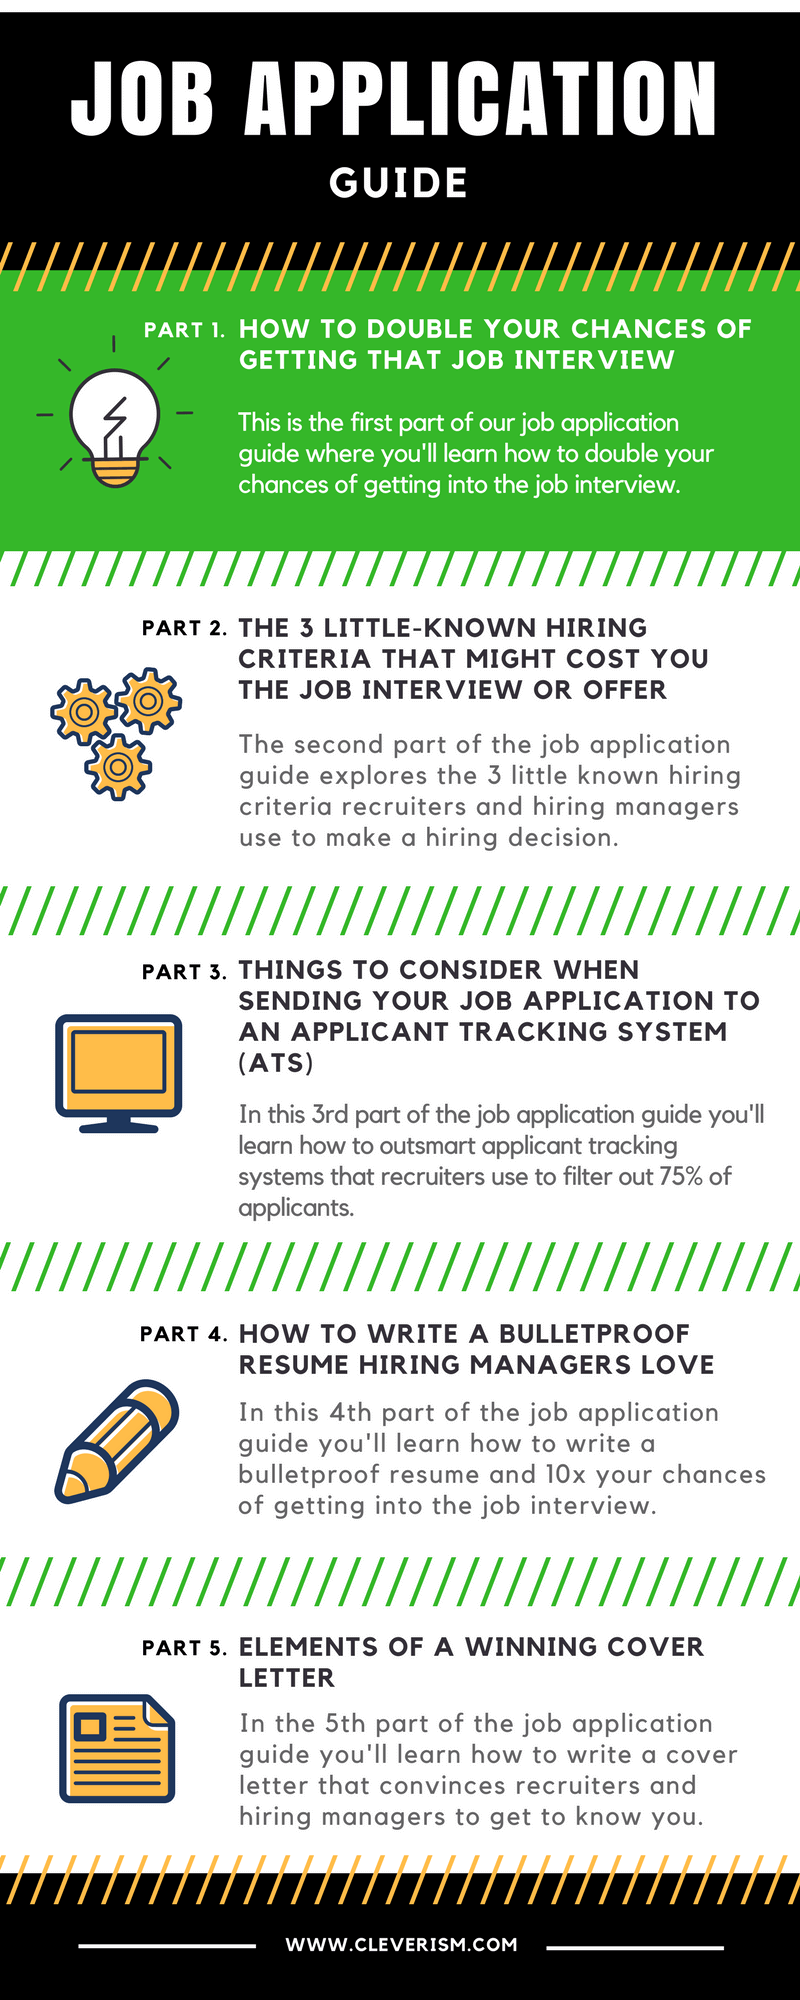 How to make a resume for your first job interview